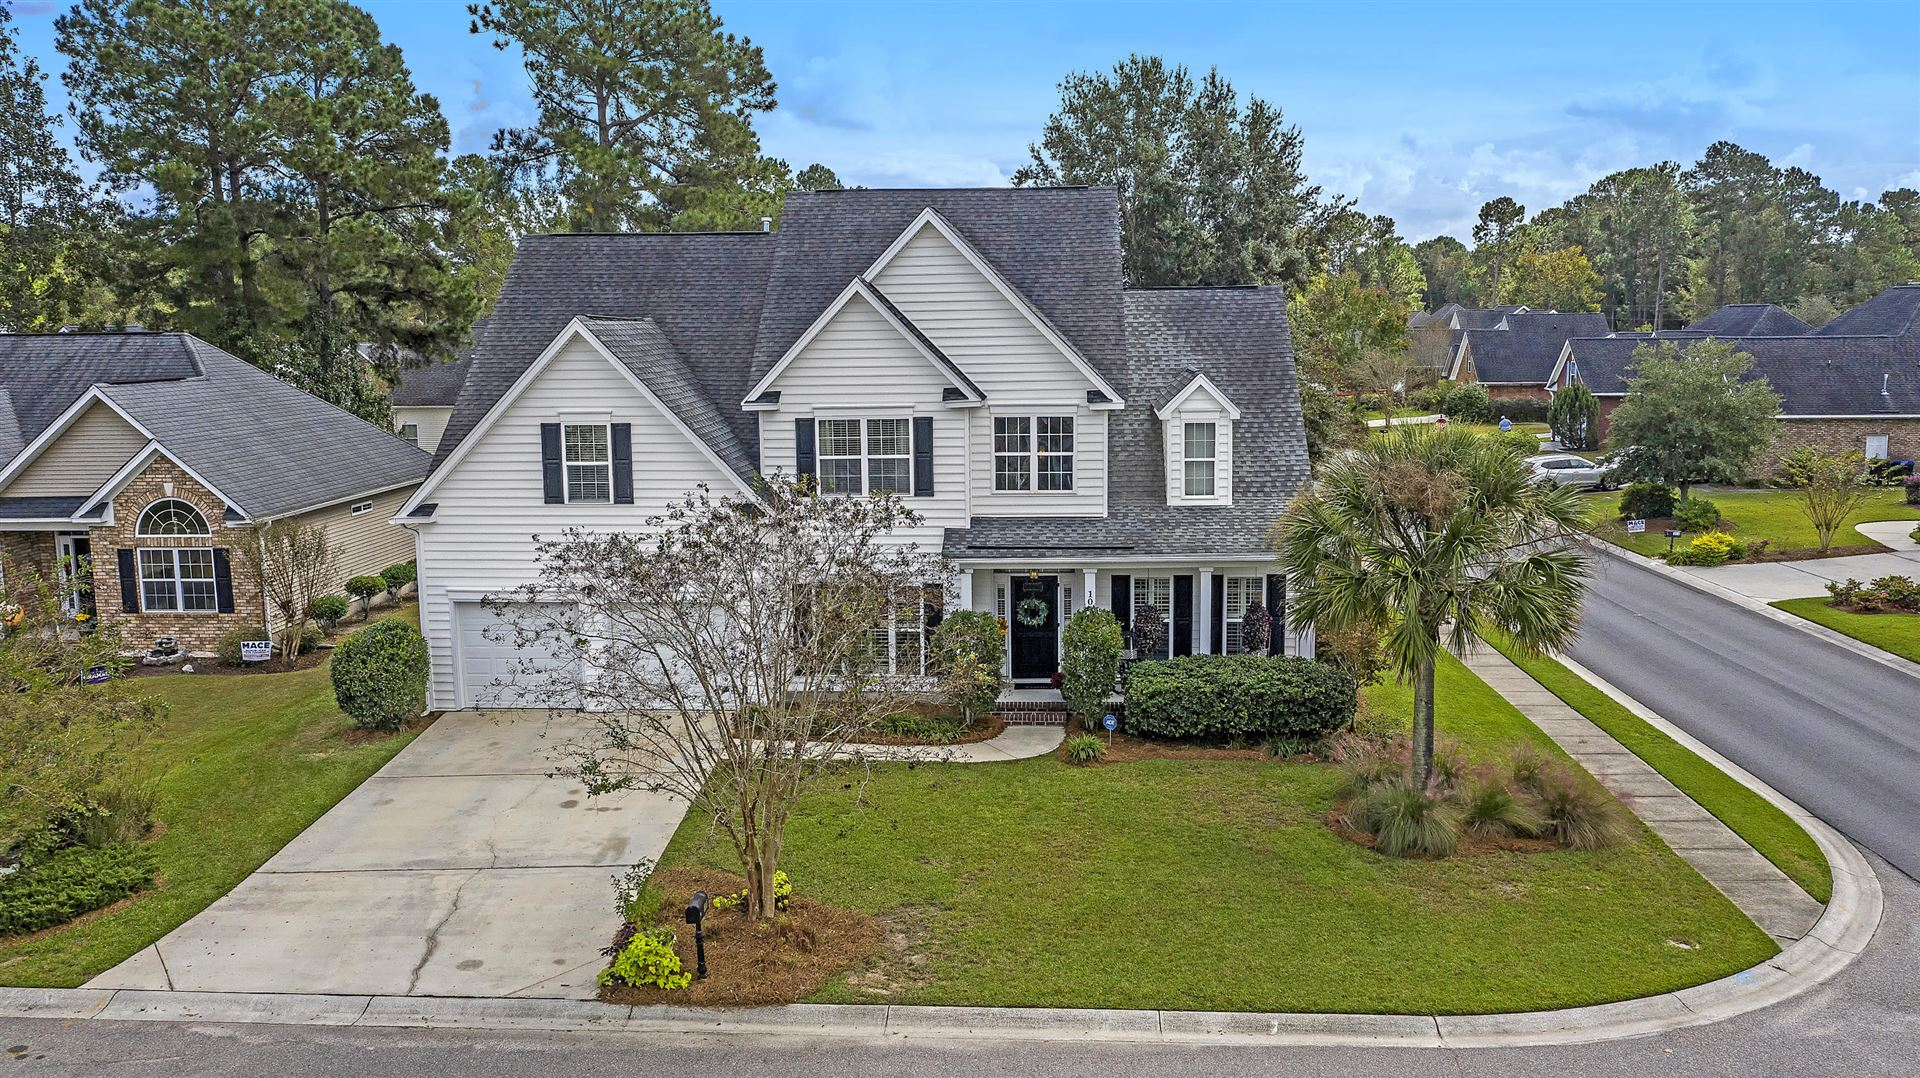 Photo of 100 Stonewall Court, Summerville, SC 29483 (MLS # 20029346)